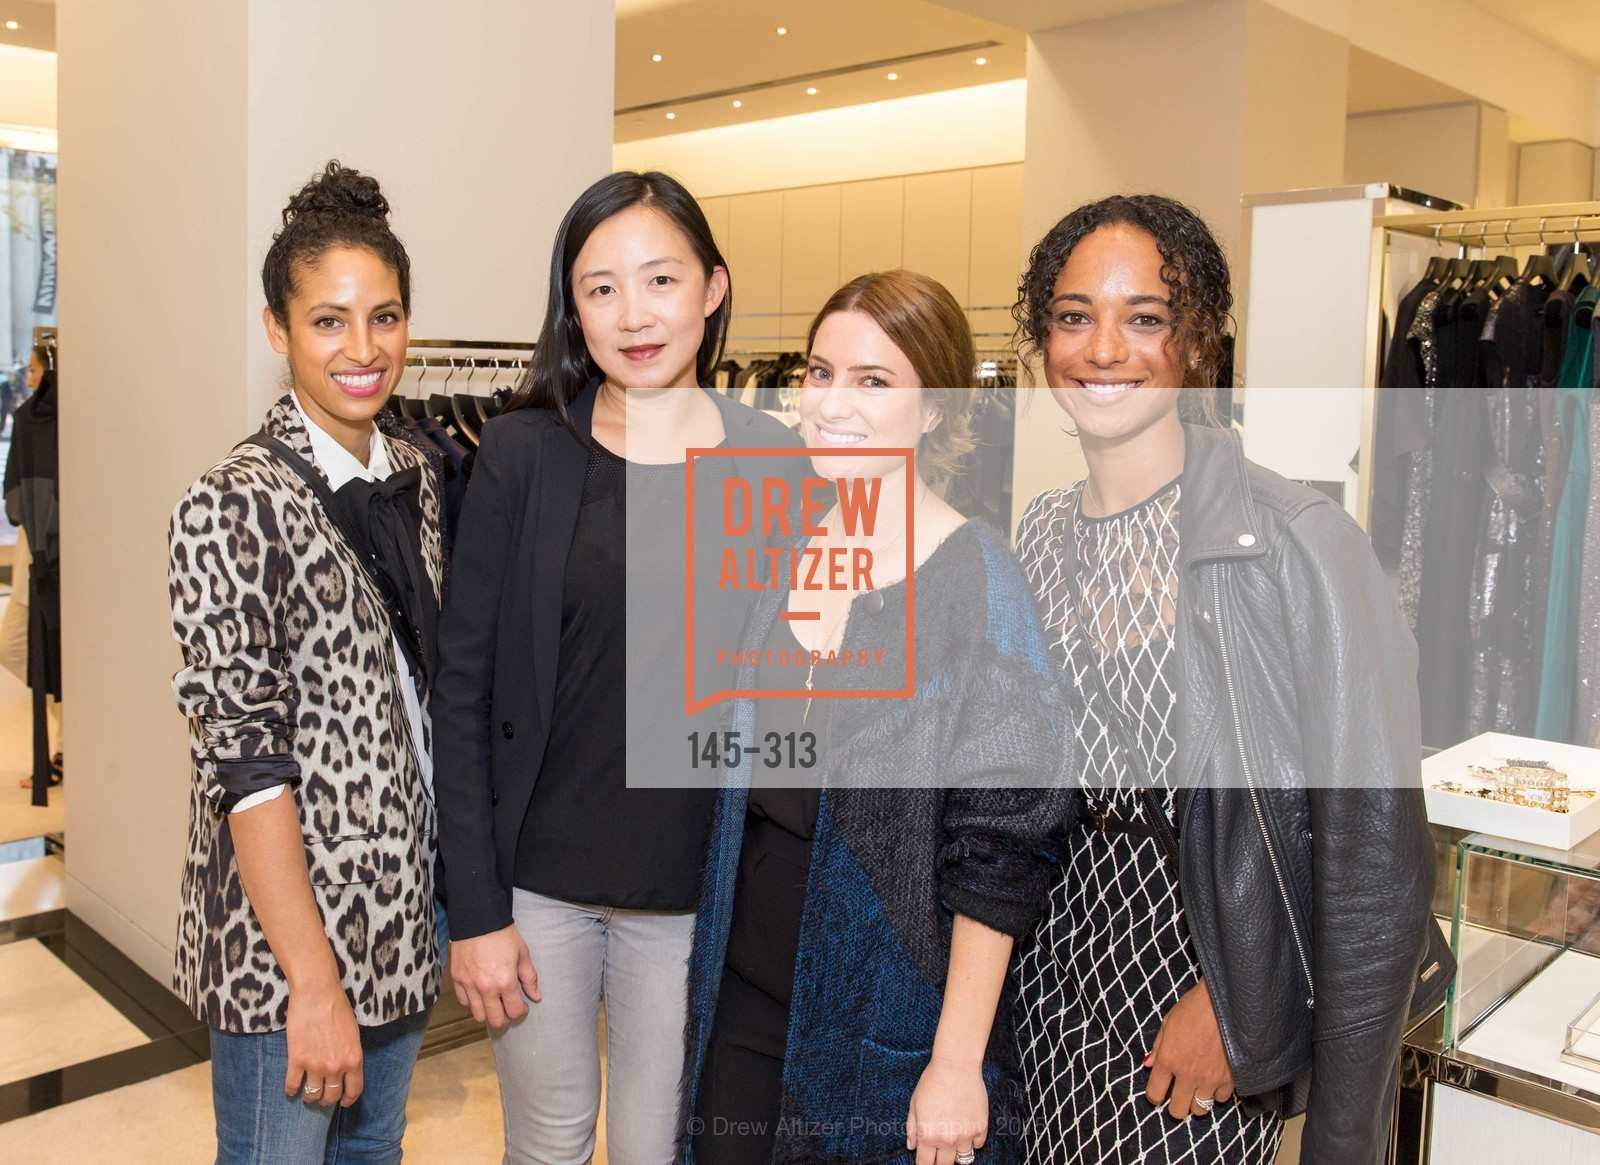 Carlina Harris, Eugenia Chien, Alicia Lund, Natalie Willis, St. John in Converstation, St John Boutique, September 24th, 2015,Drew Altizer, Drew Altizer Photography, full-service agency, private events, San Francisco photographer, photographer california